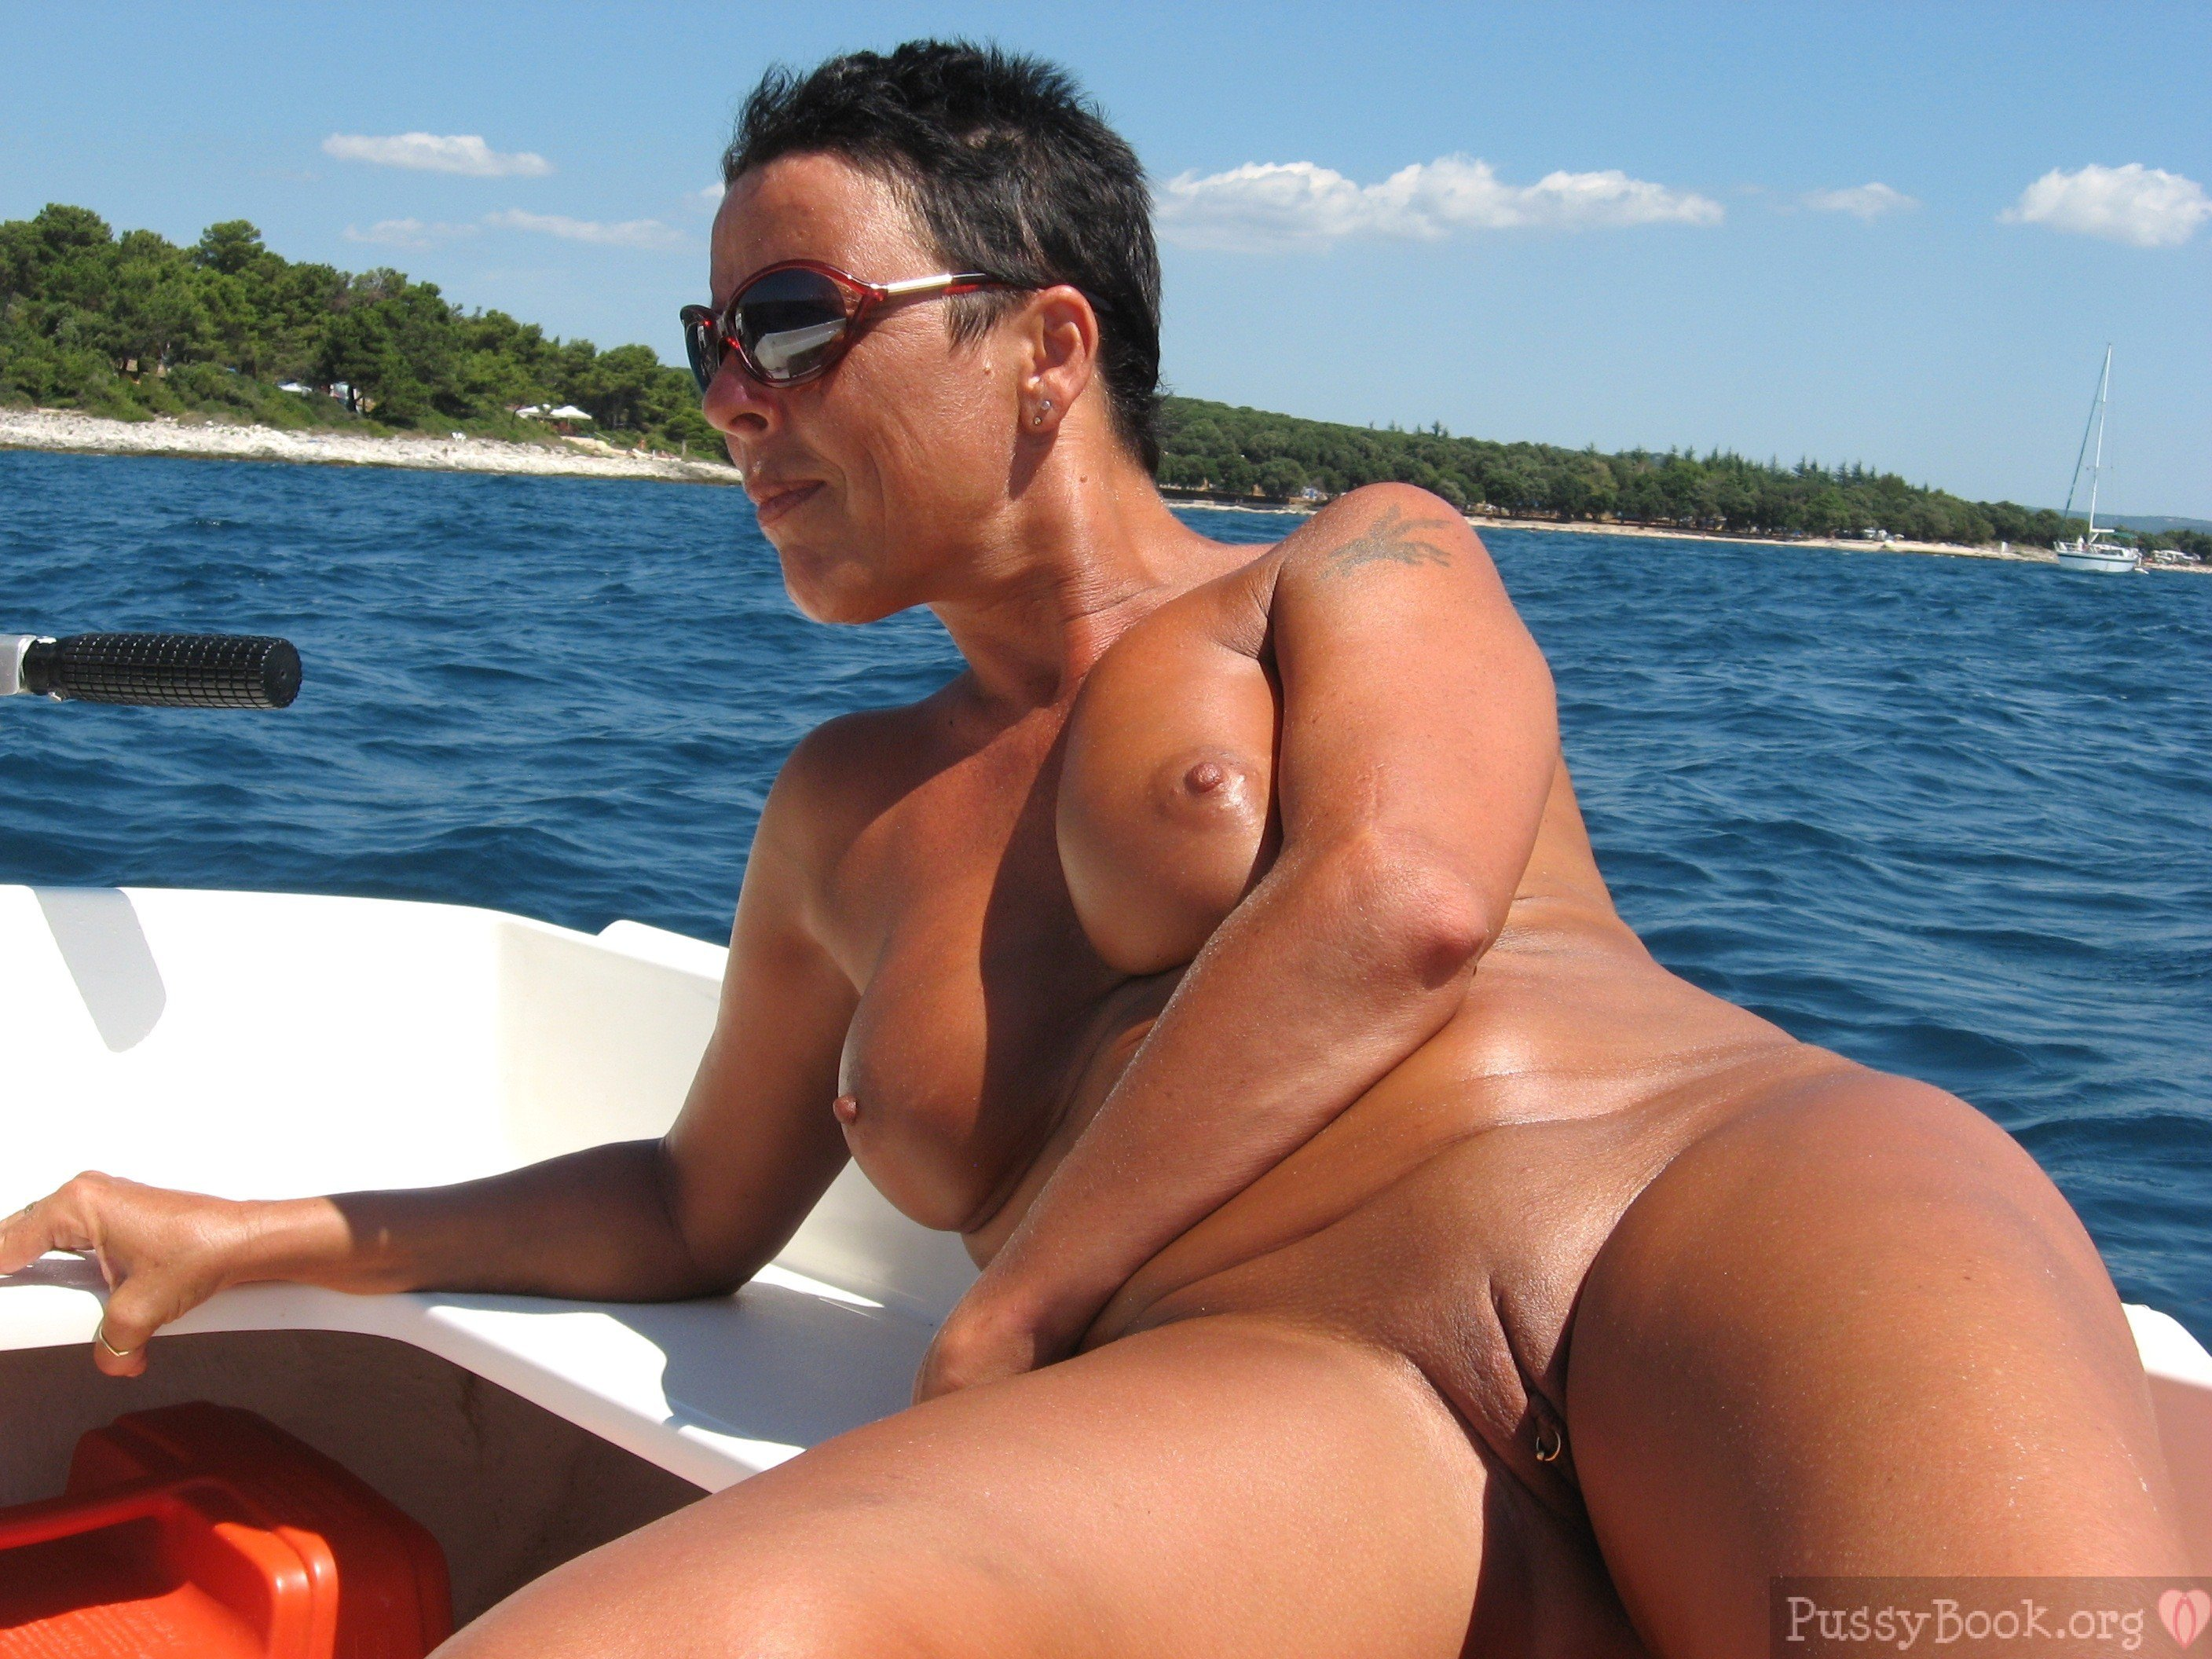 Mature Lady Sunbathing Naked On Lake Boat  Pussy Pictures -6209